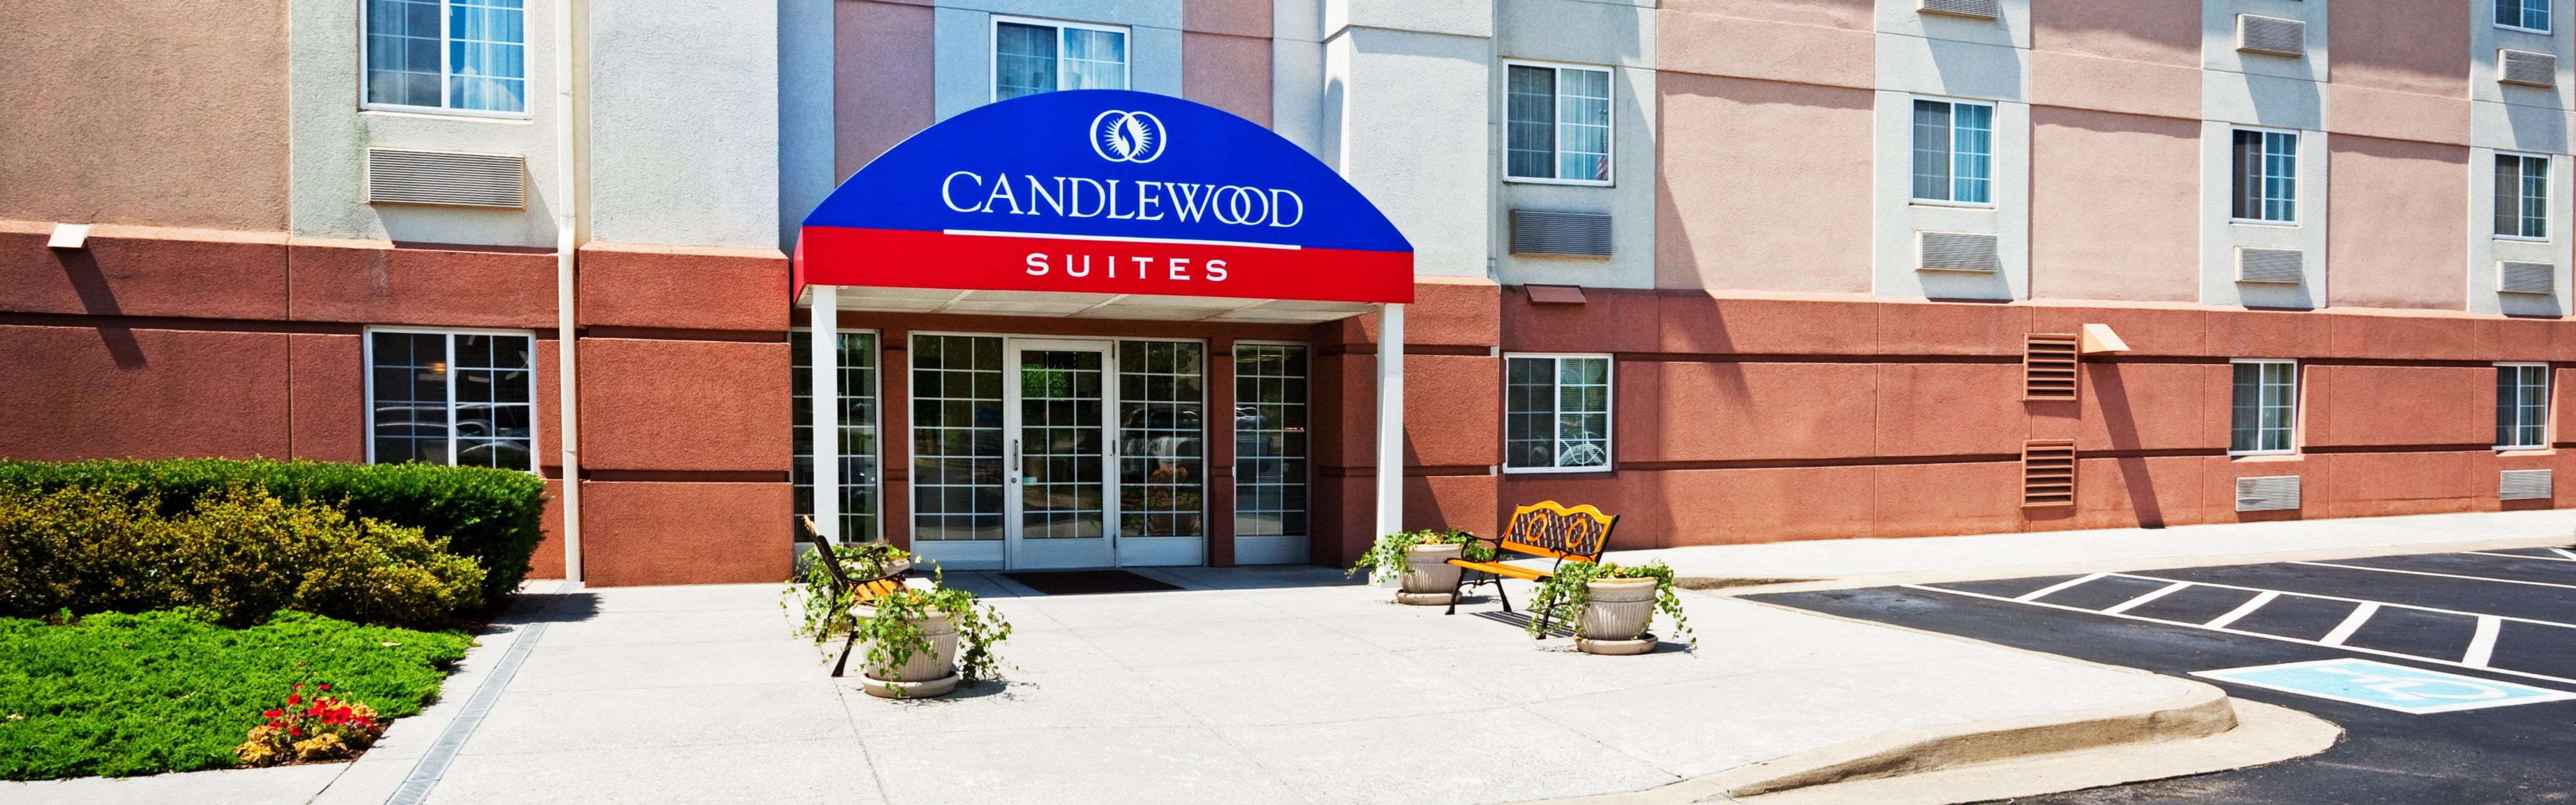 Candlewood Suites Knoxville image 0